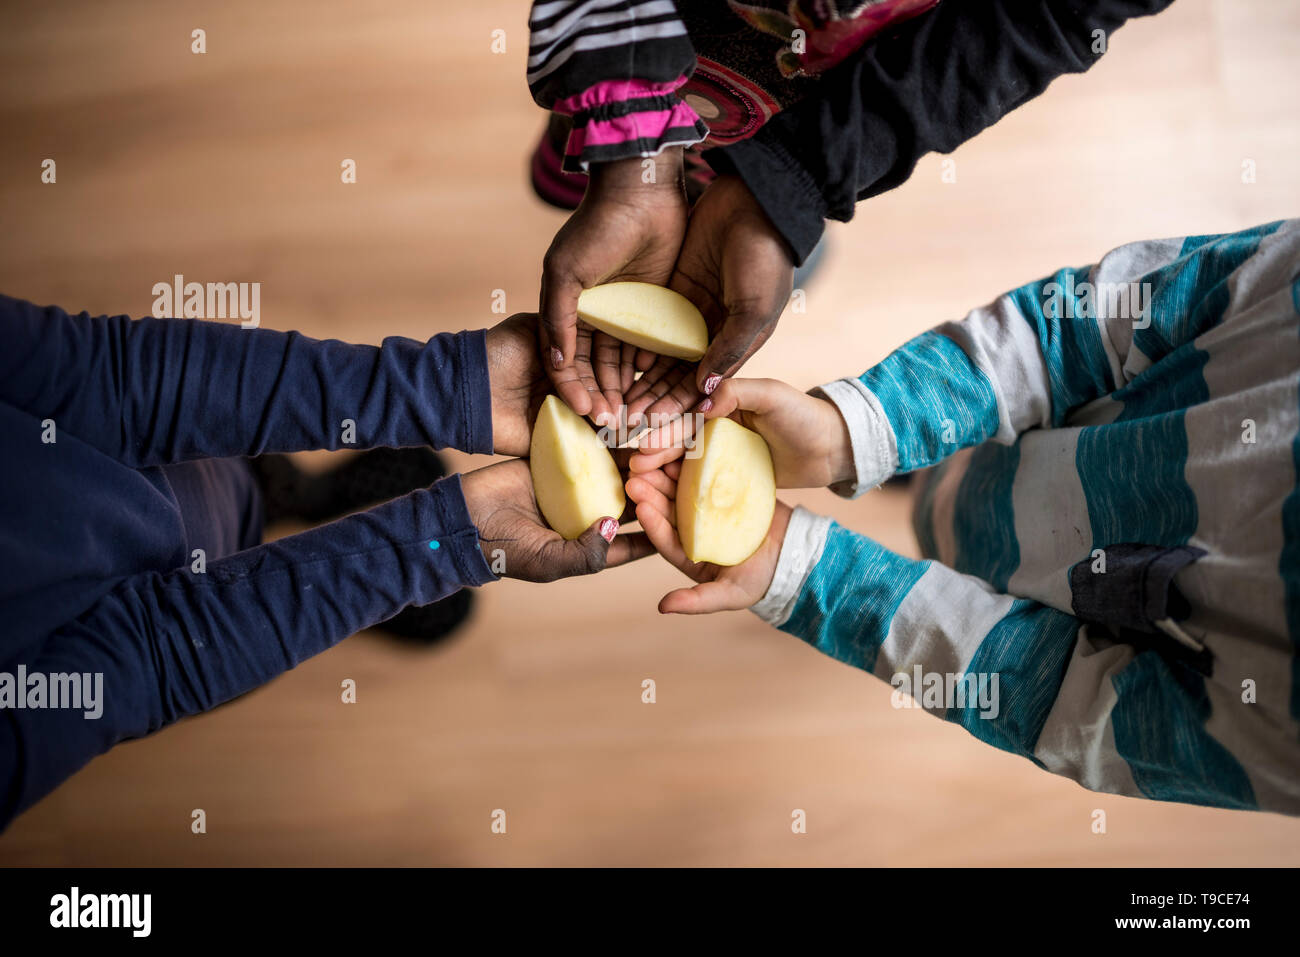 Top view of three kids of mixed races each holding a piece of apple in the palms of their hands. - Stock Image